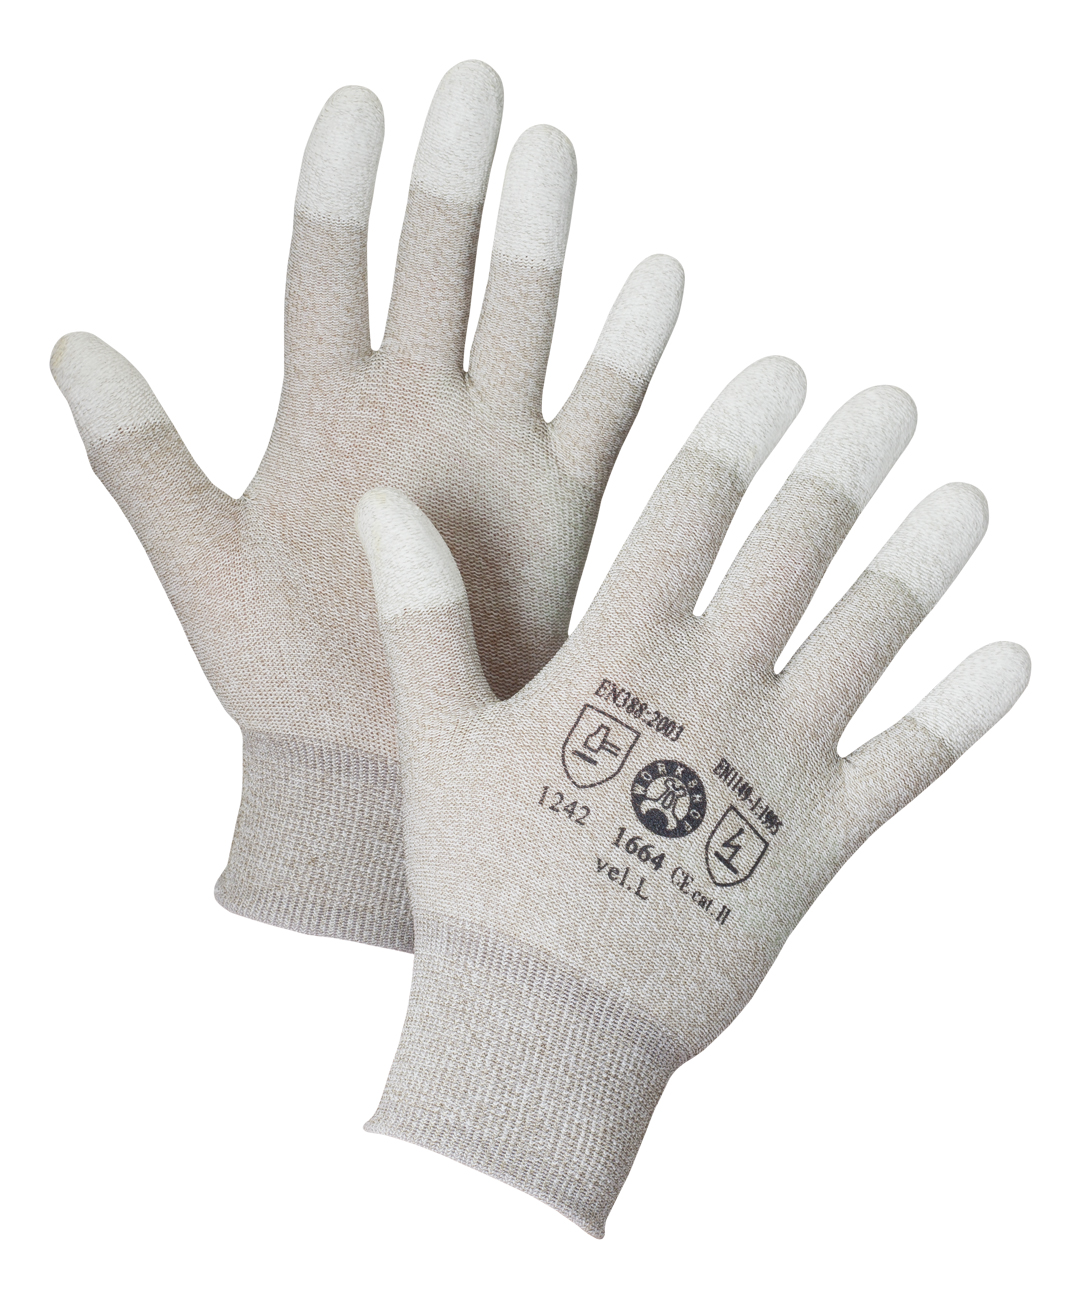 AERO Gloves PurtSkin Copper Finger Optimal 1664, antistatic gloves